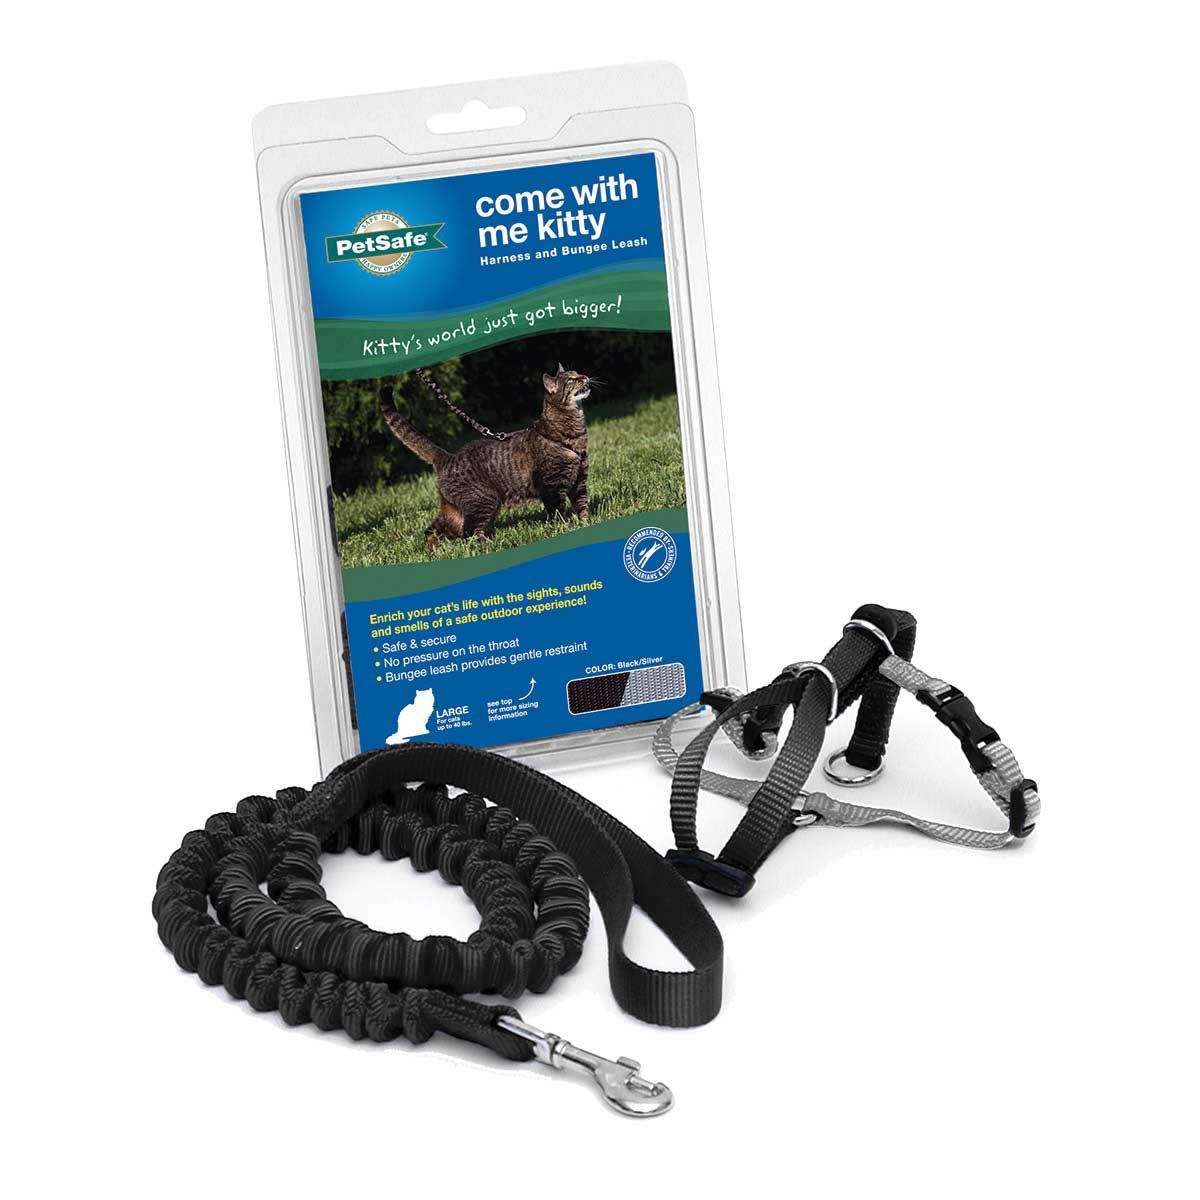 PetSafe Come With Me Kitty Harness for Cats and Bungee Leash Med Black